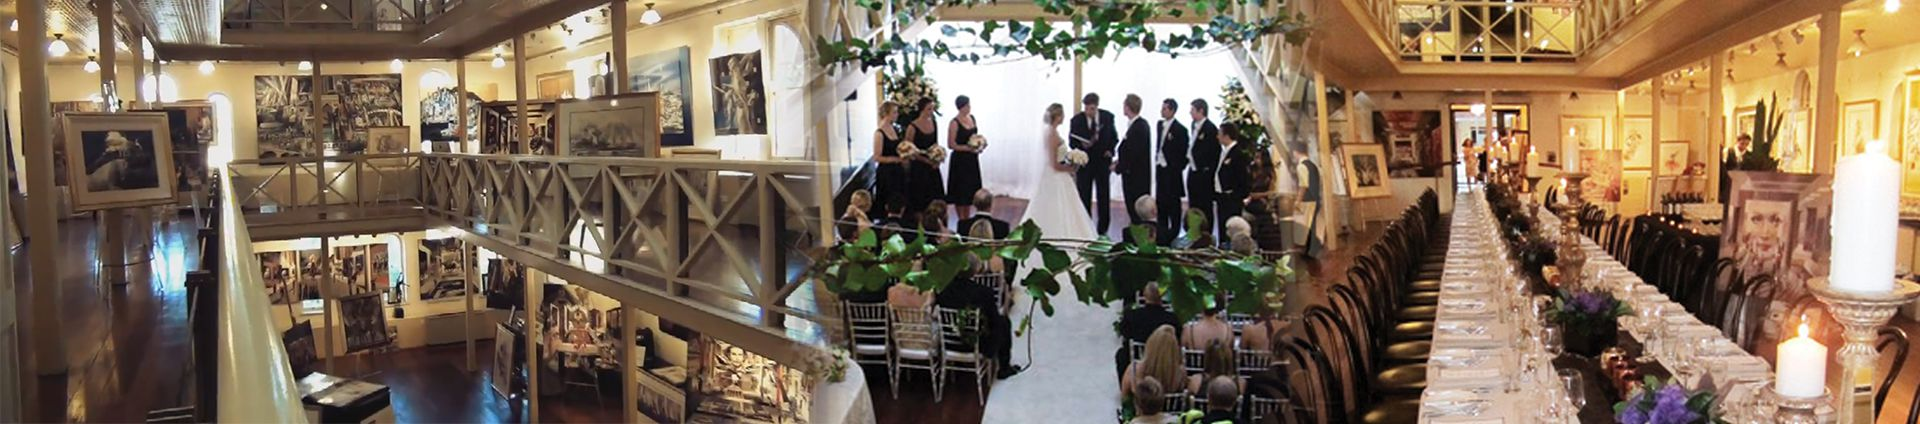 Billich Gallery, The Rocks function Venues